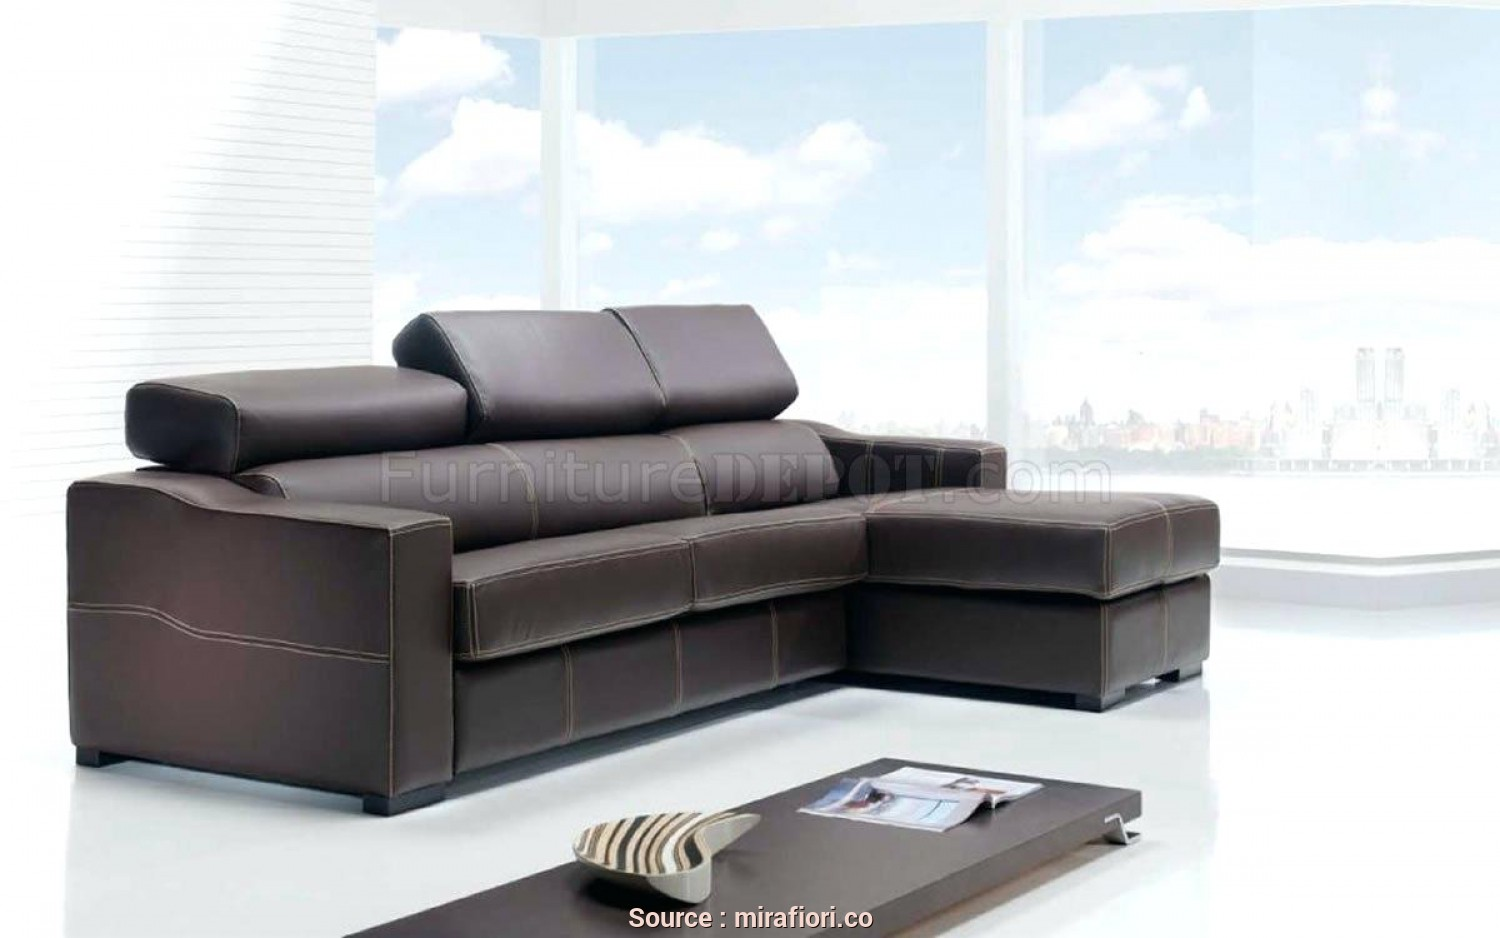 Backabro Sofa, With Chaise Longue £725 Ikea, Semplice Sofa Sleeper With Chaise Brown Full, Grain Leather Modern Sectional Sofa W Sleeper Sofa, . Sofa Sleeper With Chaise